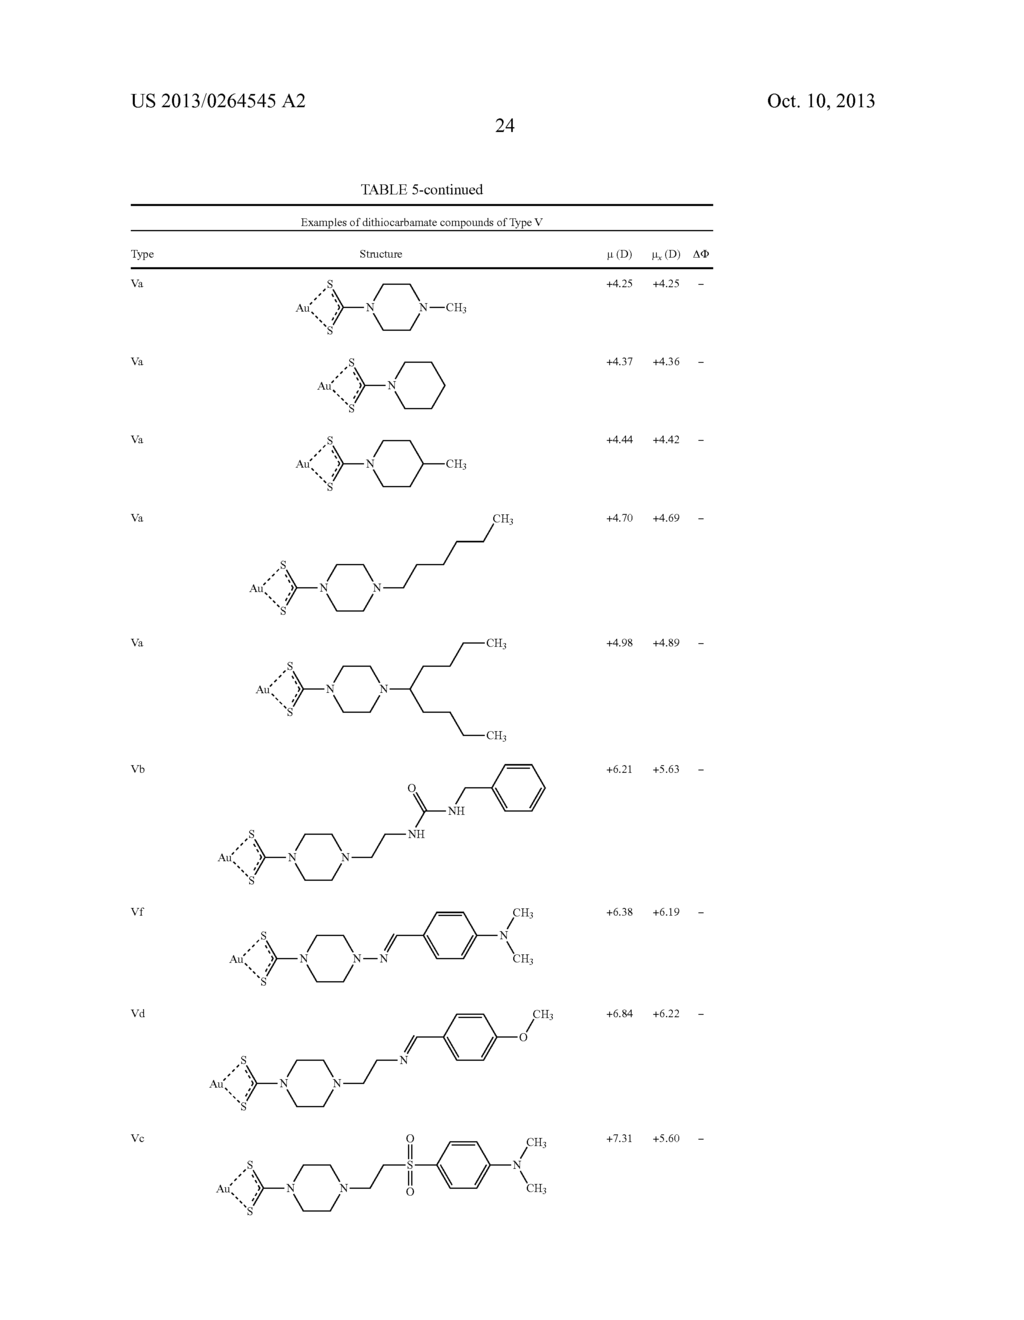 USES OF DITHIOCARBAMATE COMPOUNDS - diagram, schematic, and image 50